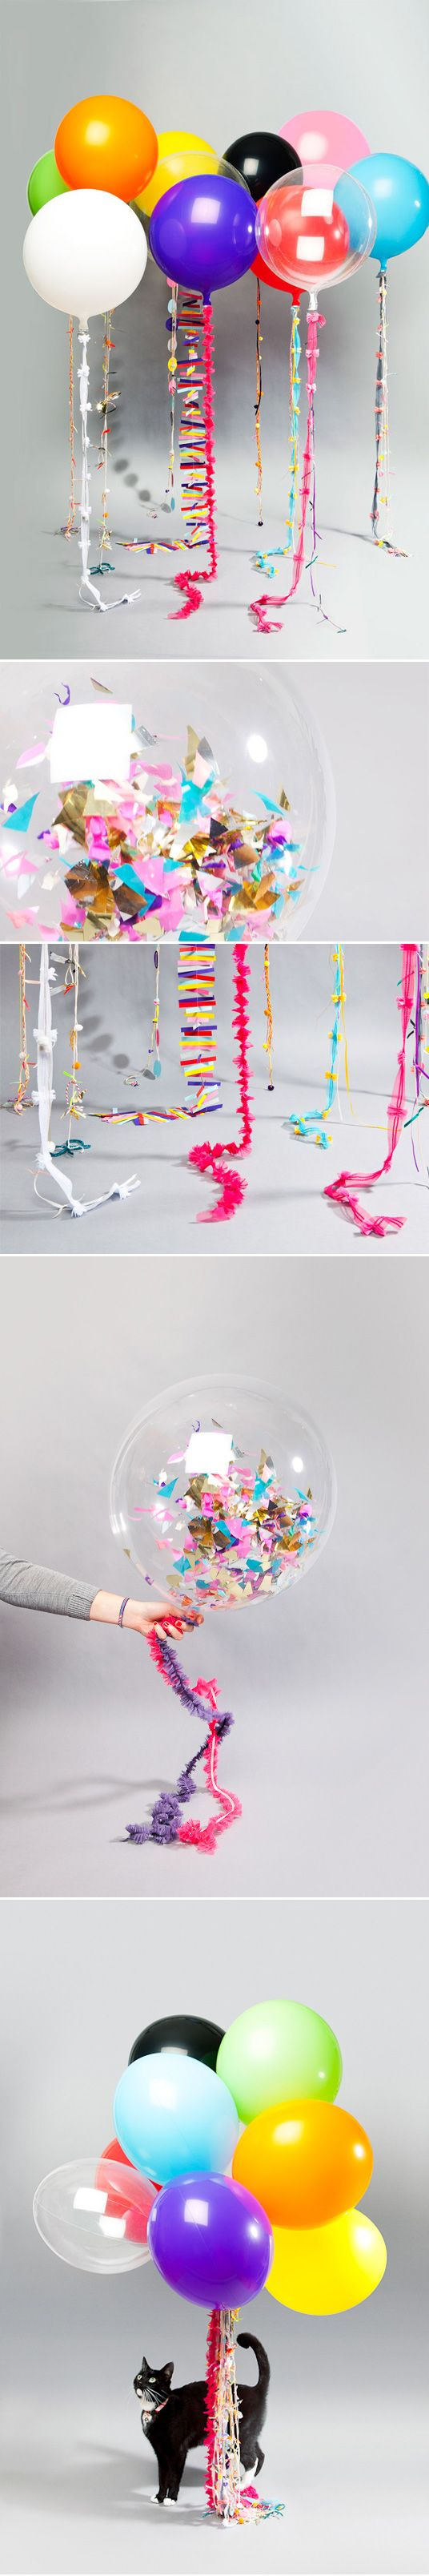 Confetti IN clear balloons. Oh, yes!